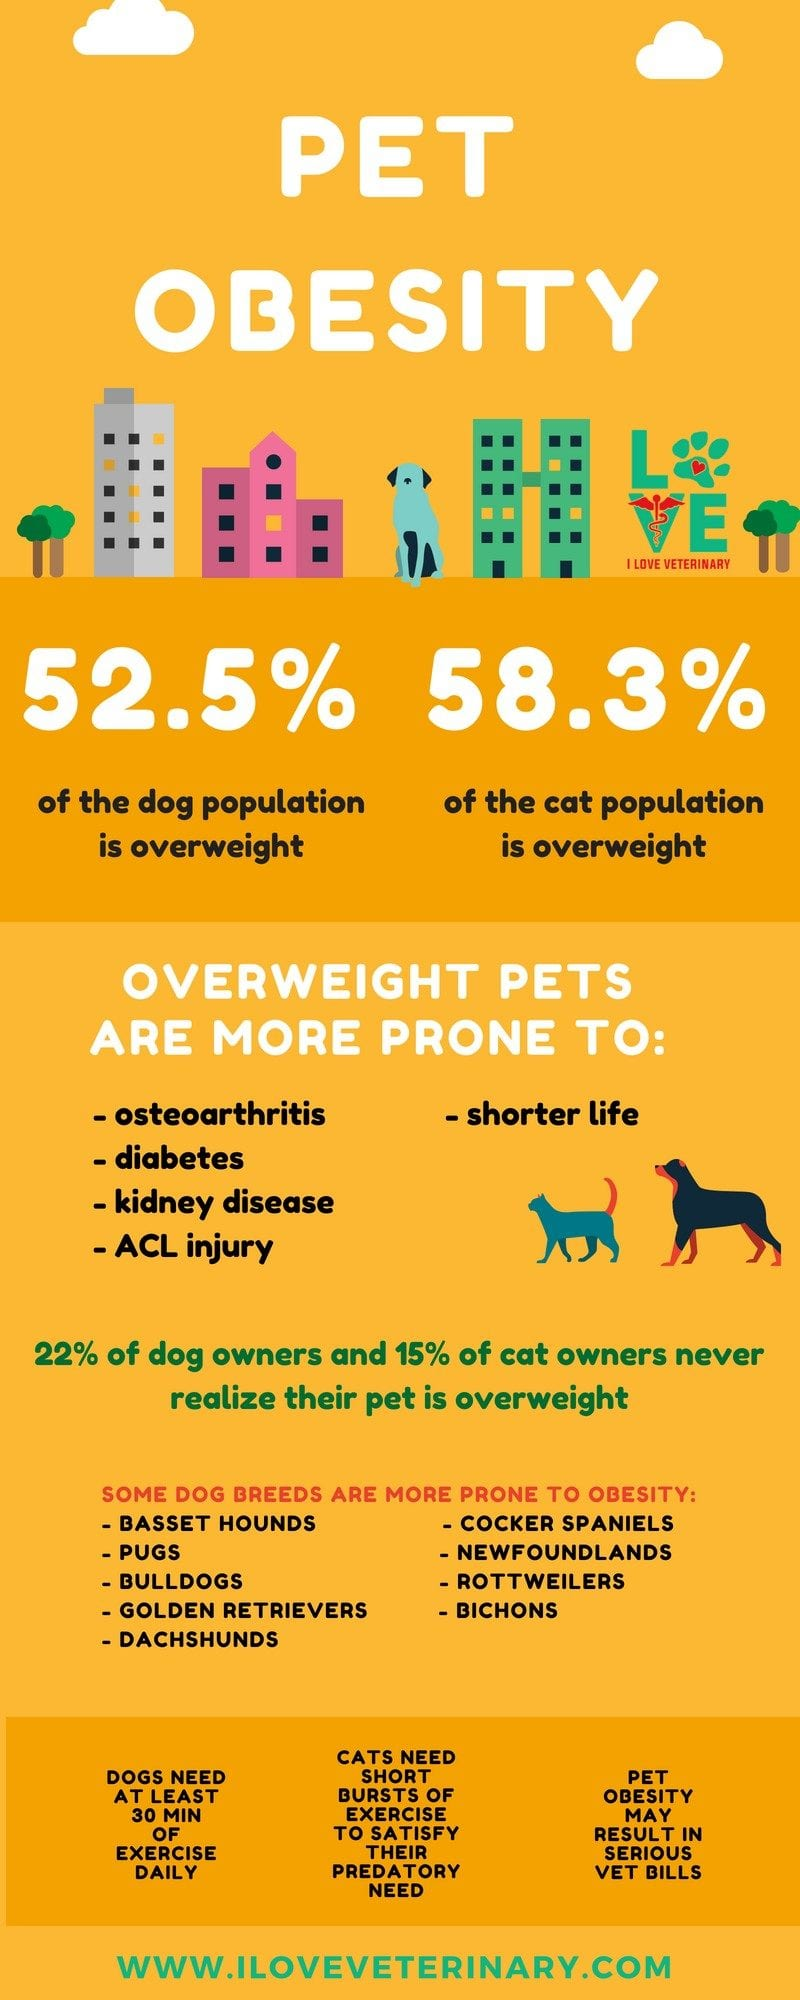 pet obesity2 1 I Love Veterinary - Blog for Veterinarians, Vet Techs, Students